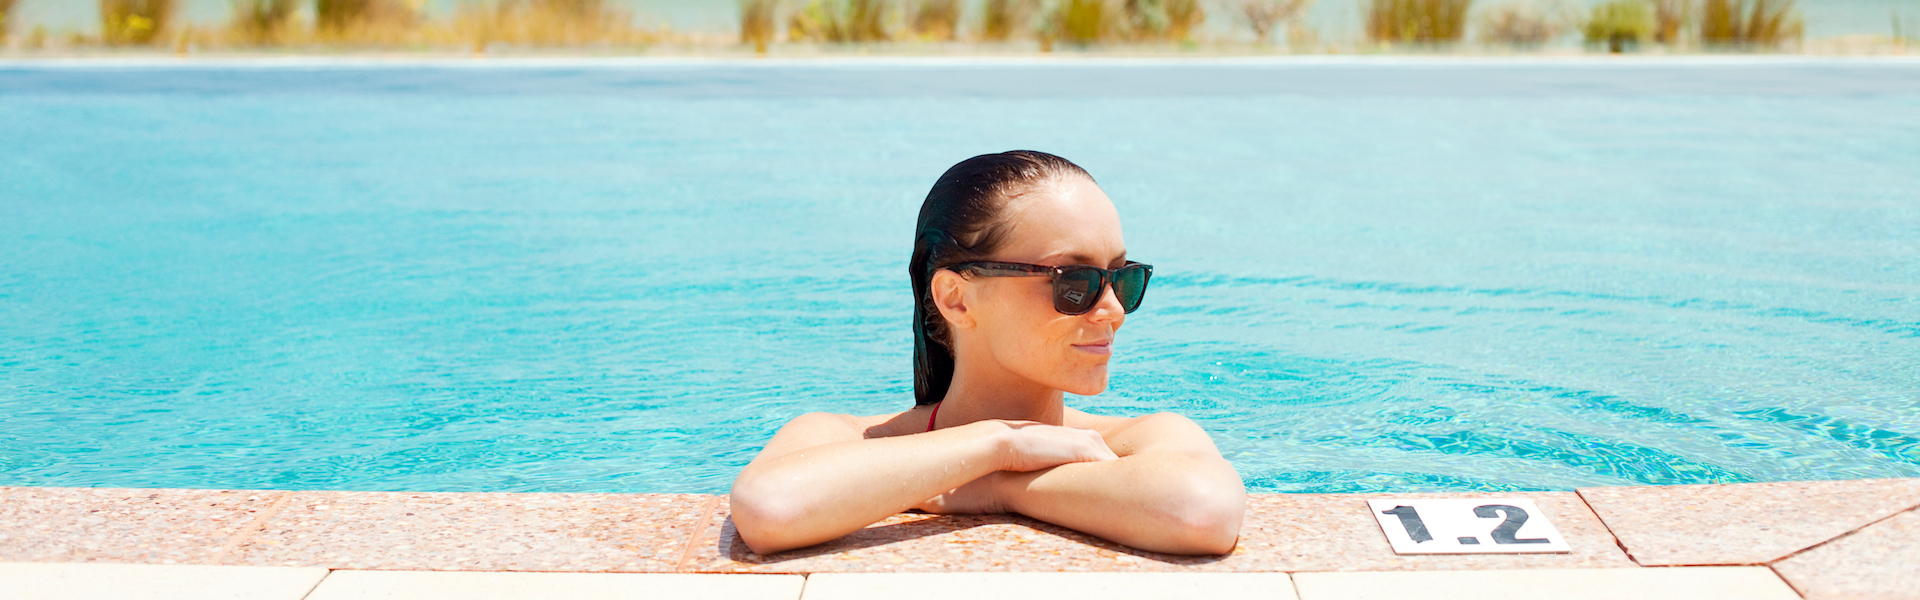 image of a woman in the Seashells infinity pool